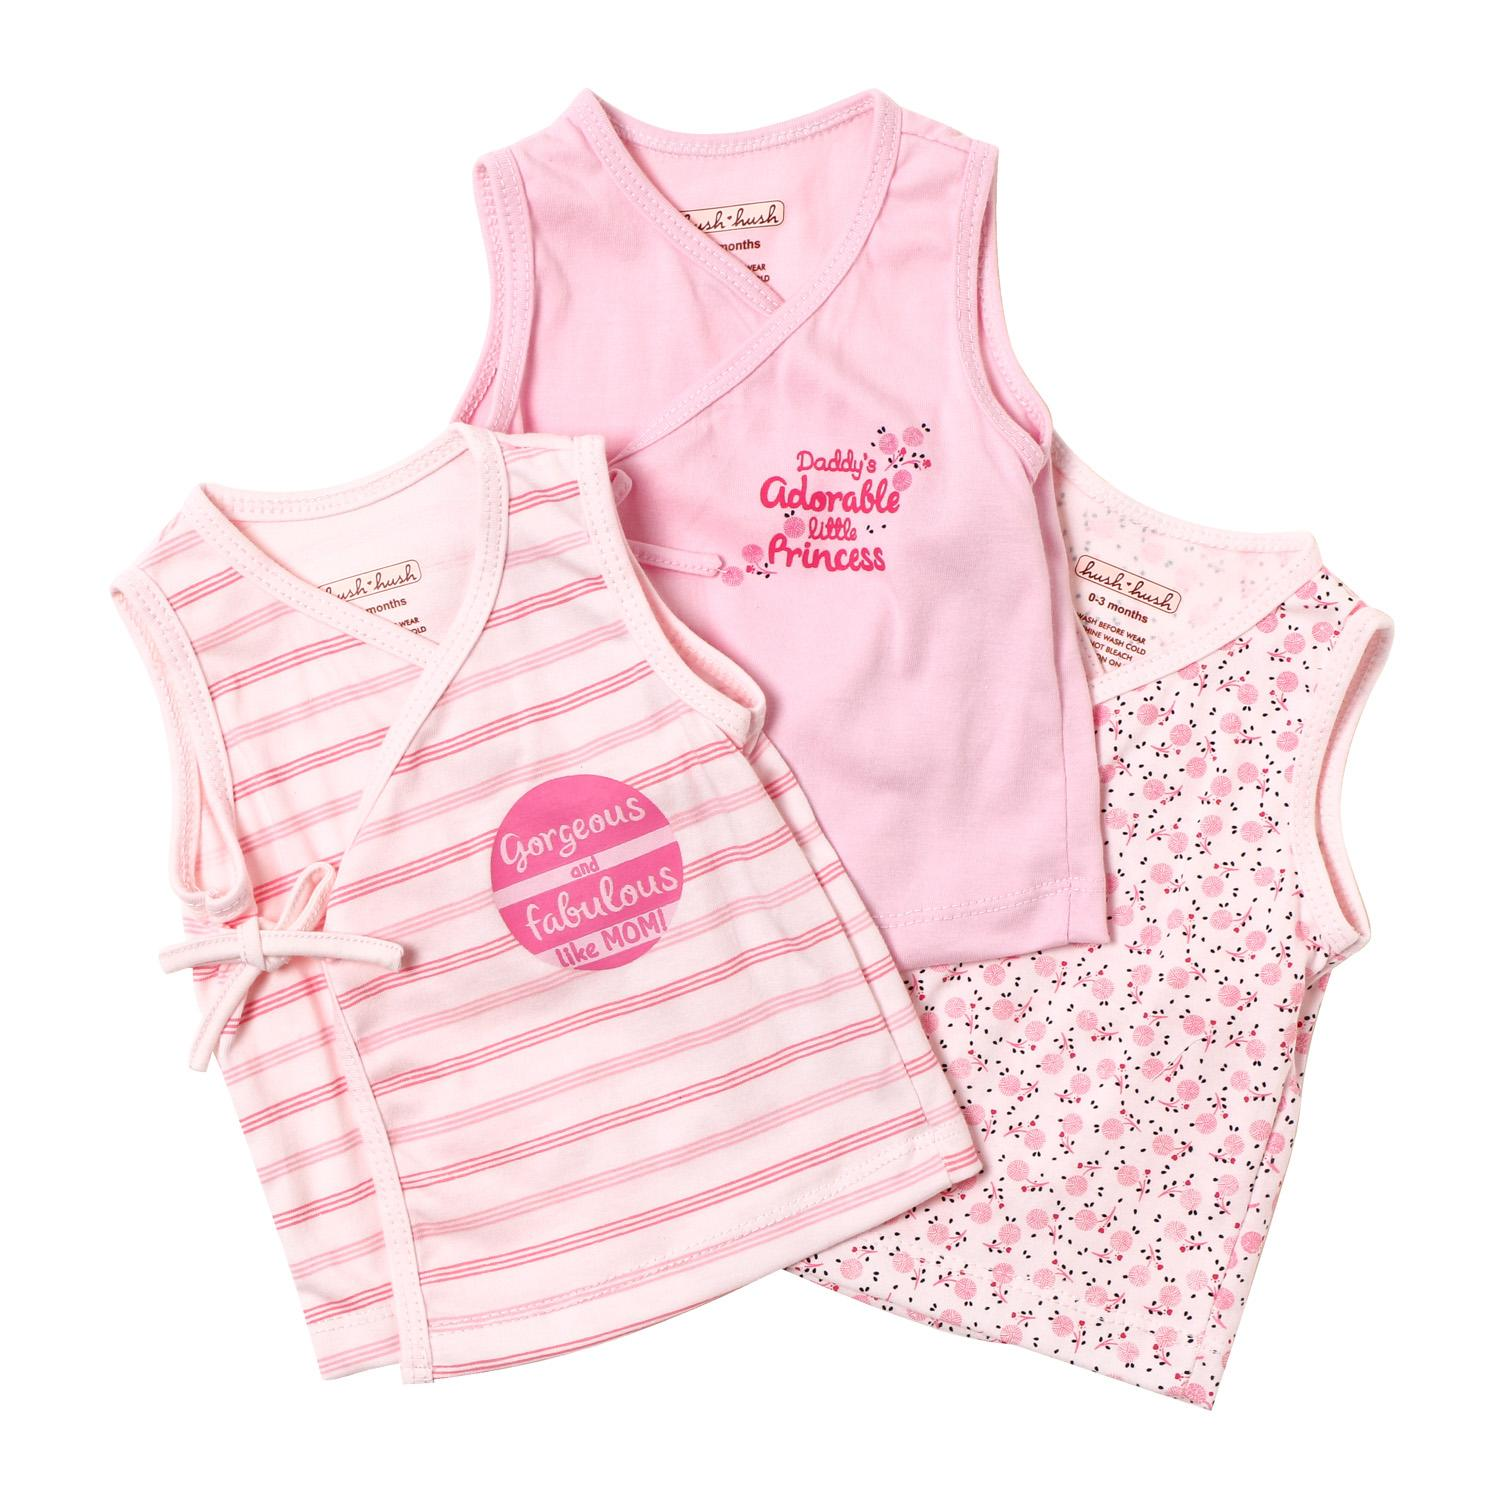 a1f16efdd Girls Clothing Sets for sale - Clothing Sets for Baby Girls Online ...